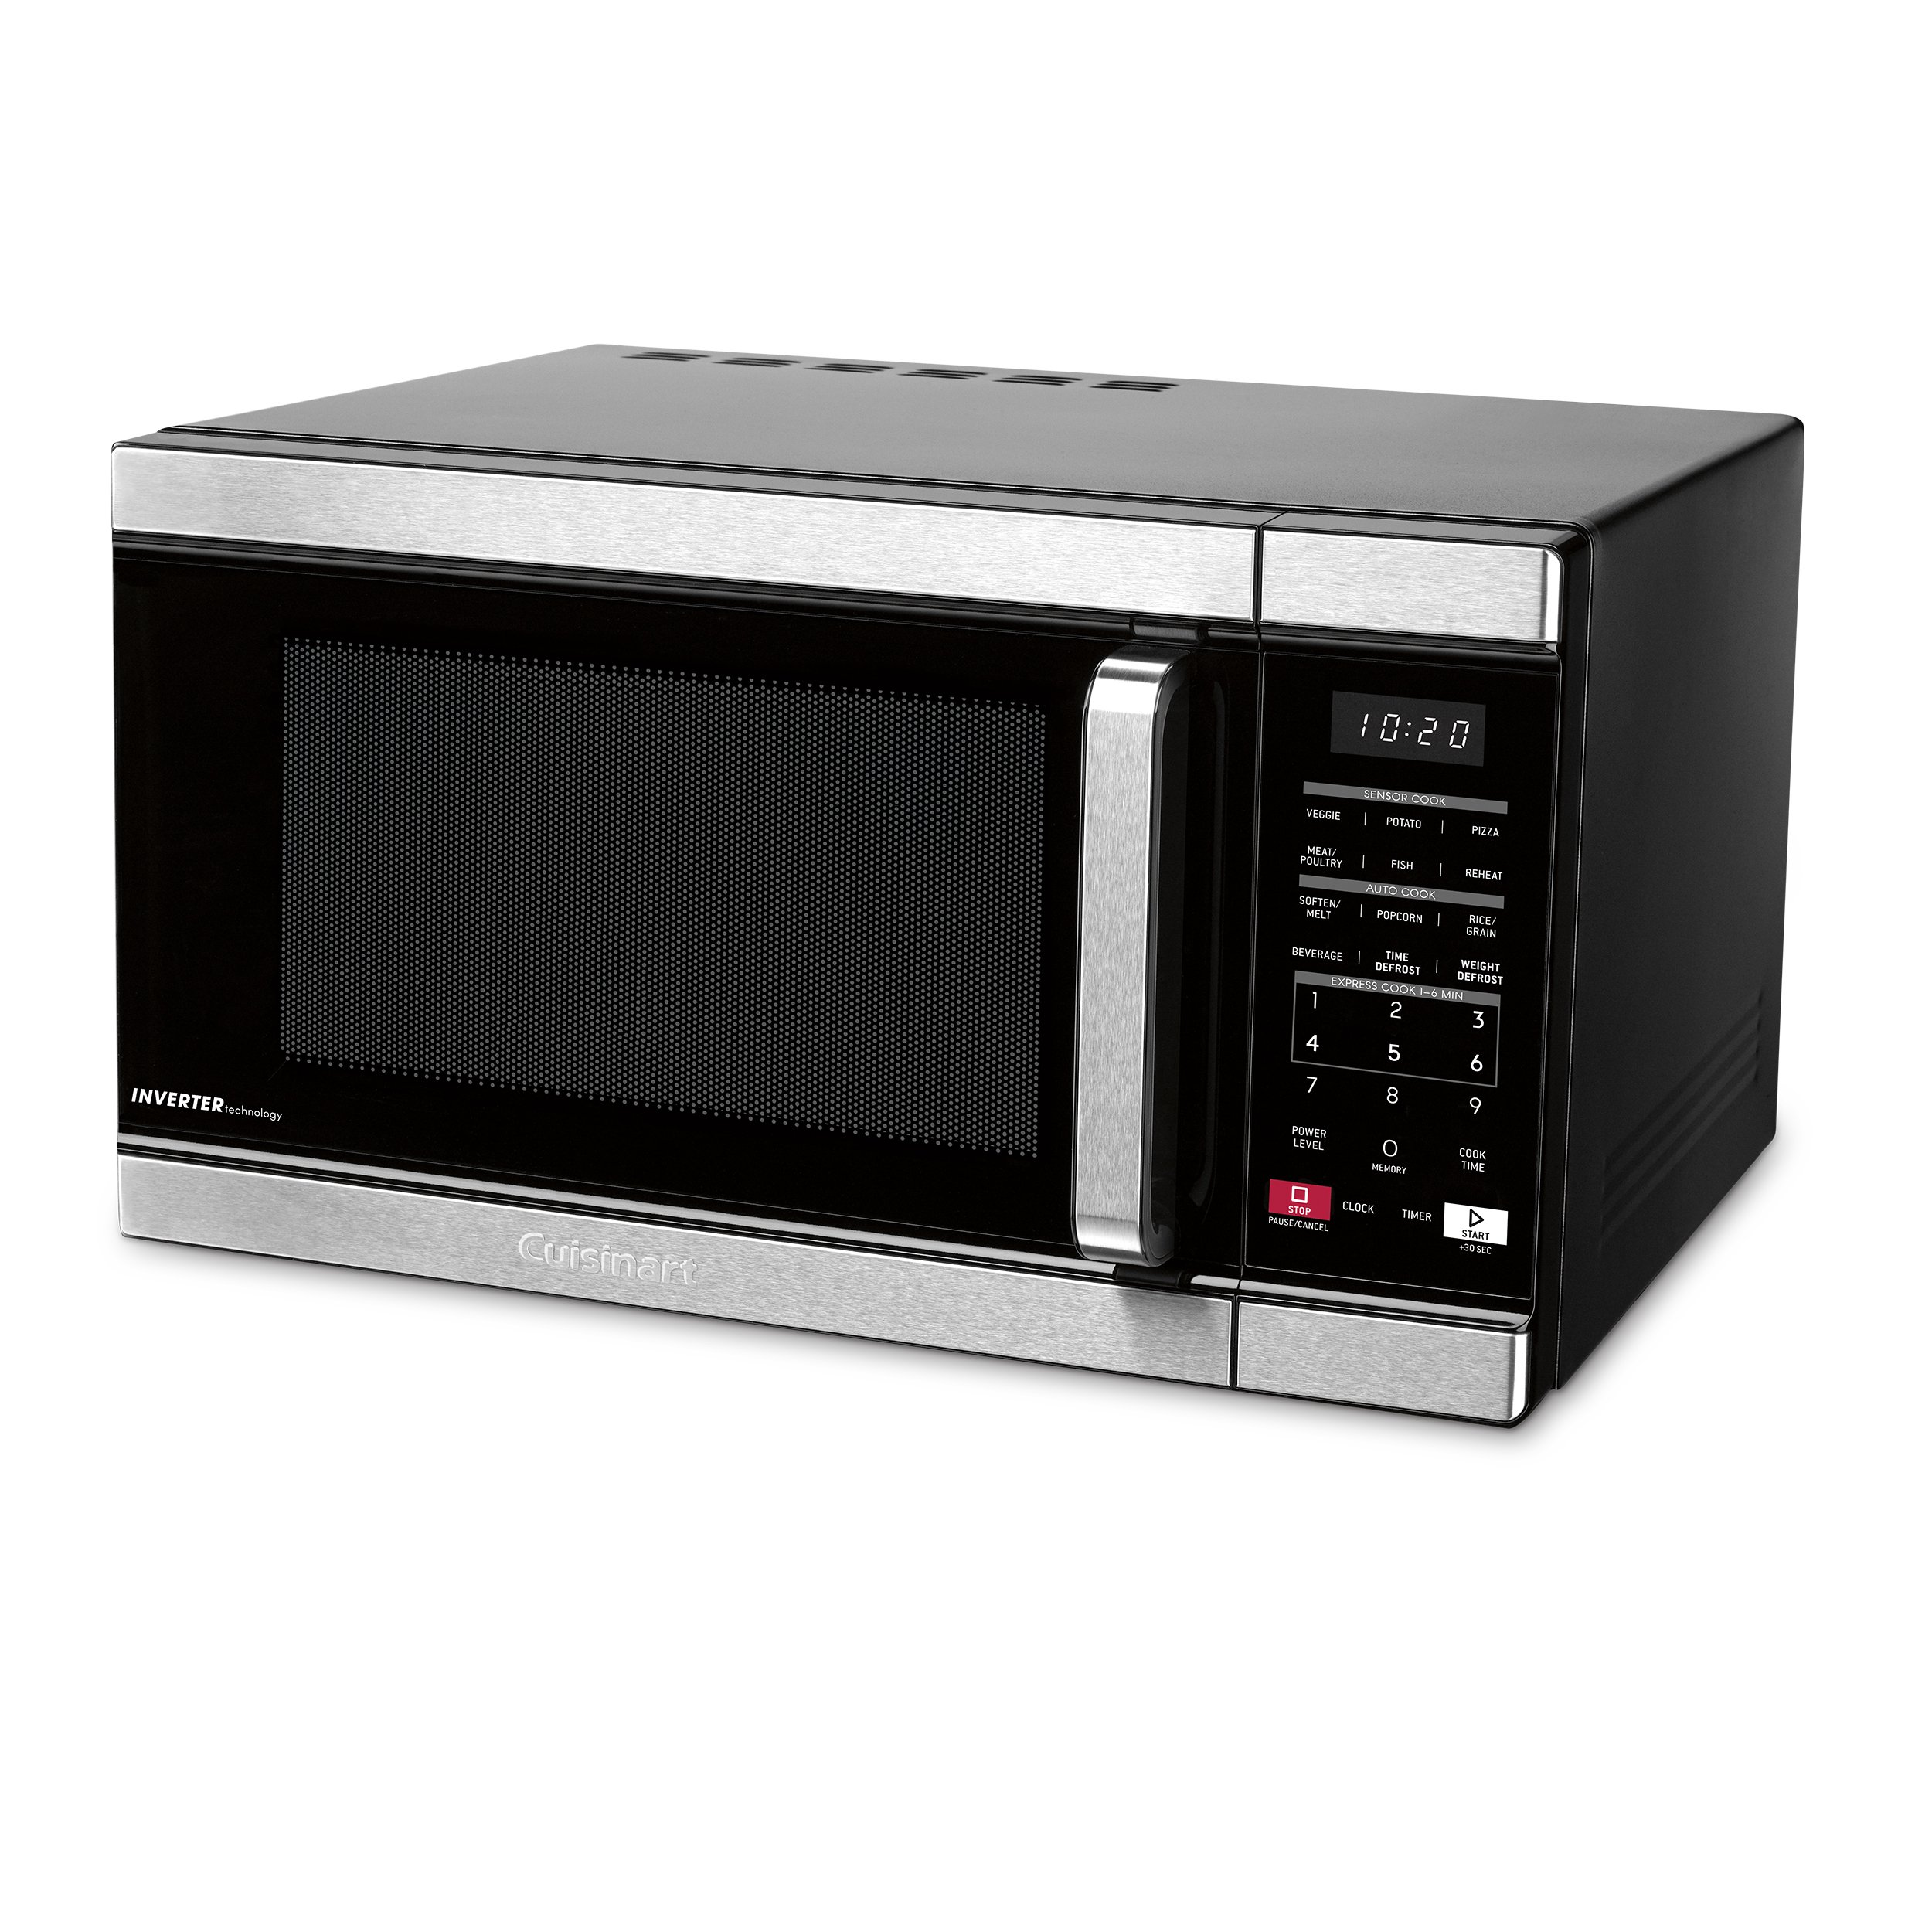 Cuisinart CMW-110 Stainless Steel Microwave Oven, Silver by Cuisinart